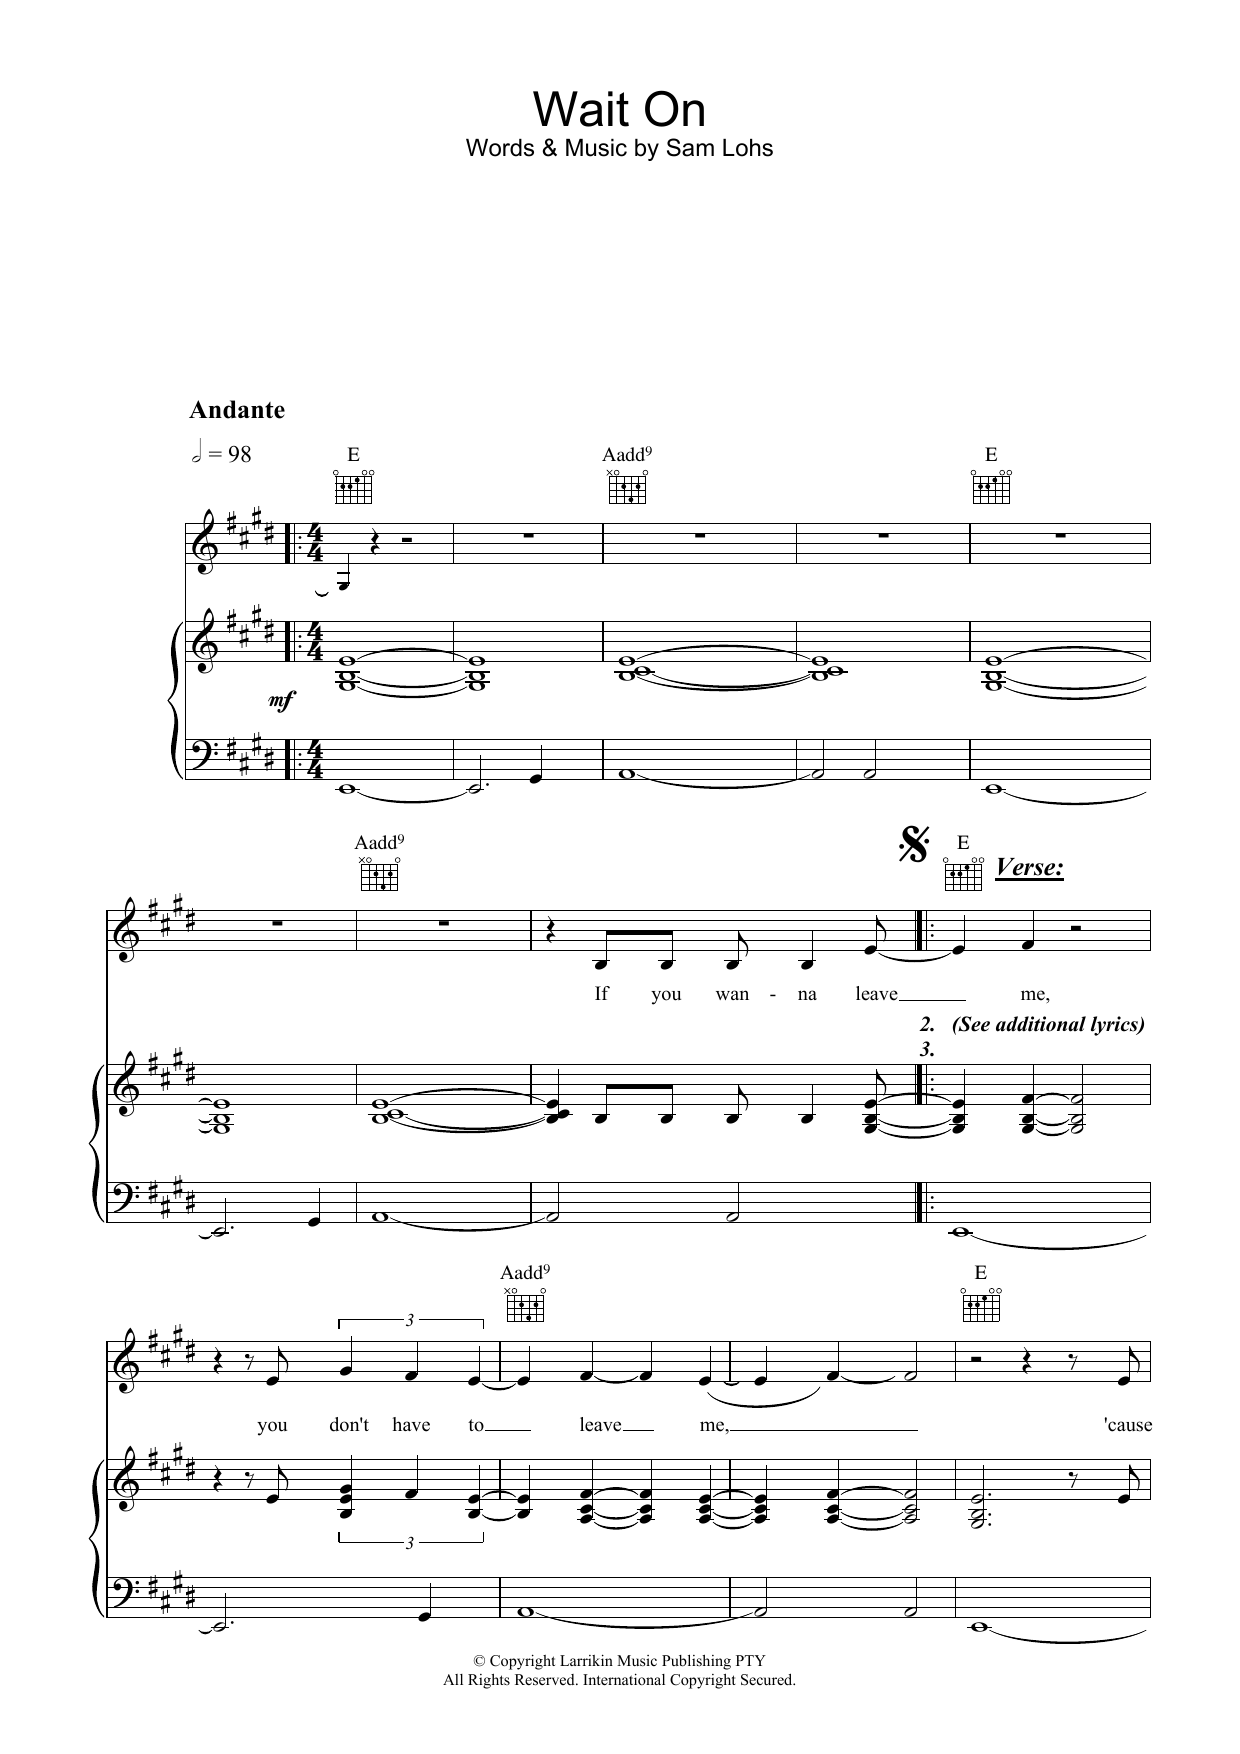 Fruit Wait On sheet music preview music notes and score for Piano, Vocal & Guitar (Right-Hand Melody) including 7 page(s)